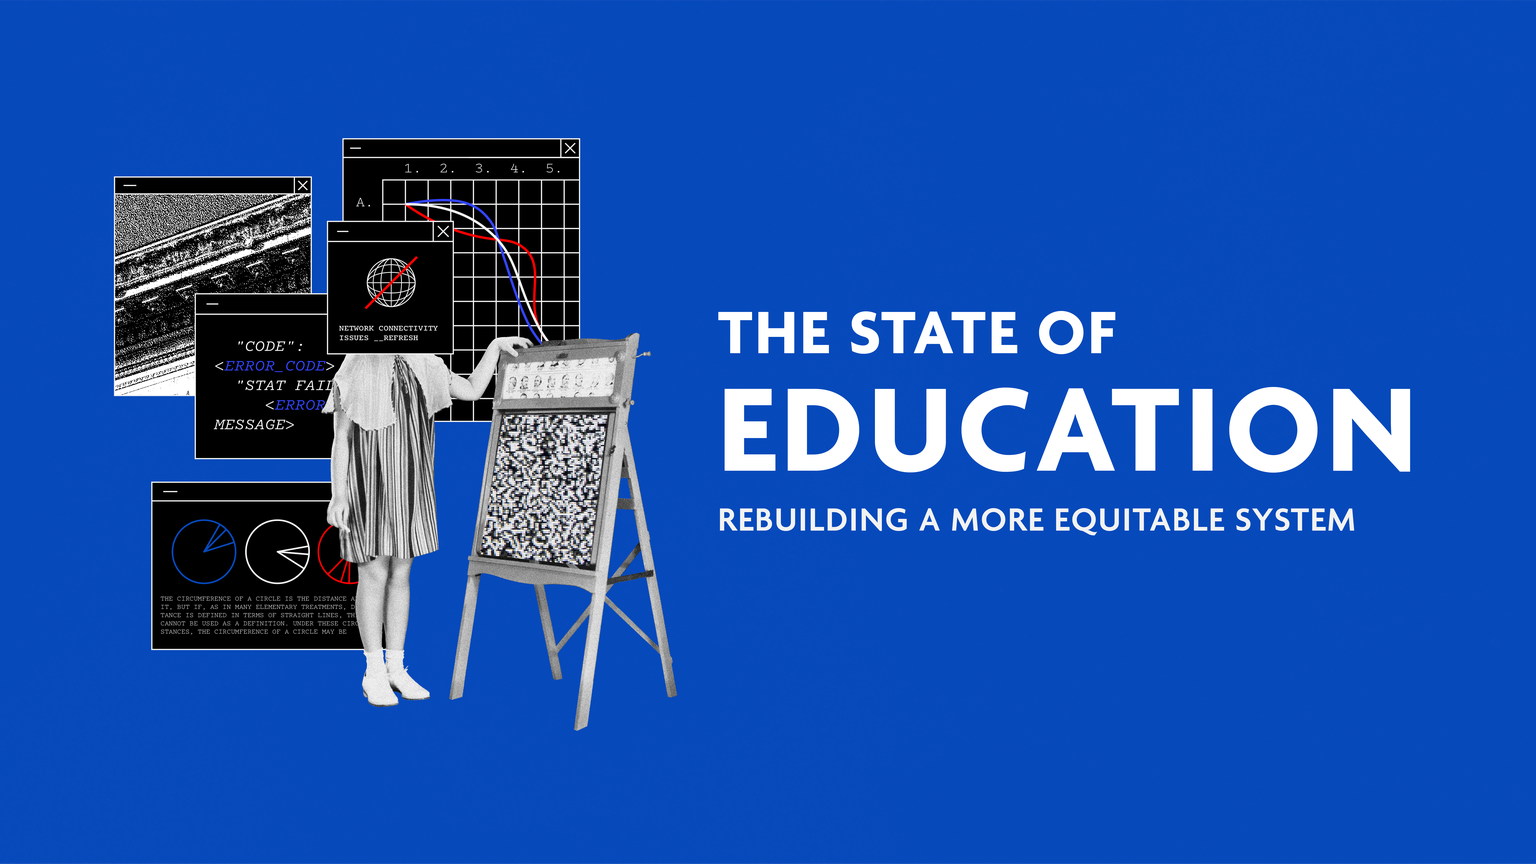 The State of Education: Rebuilding a More Equitable System